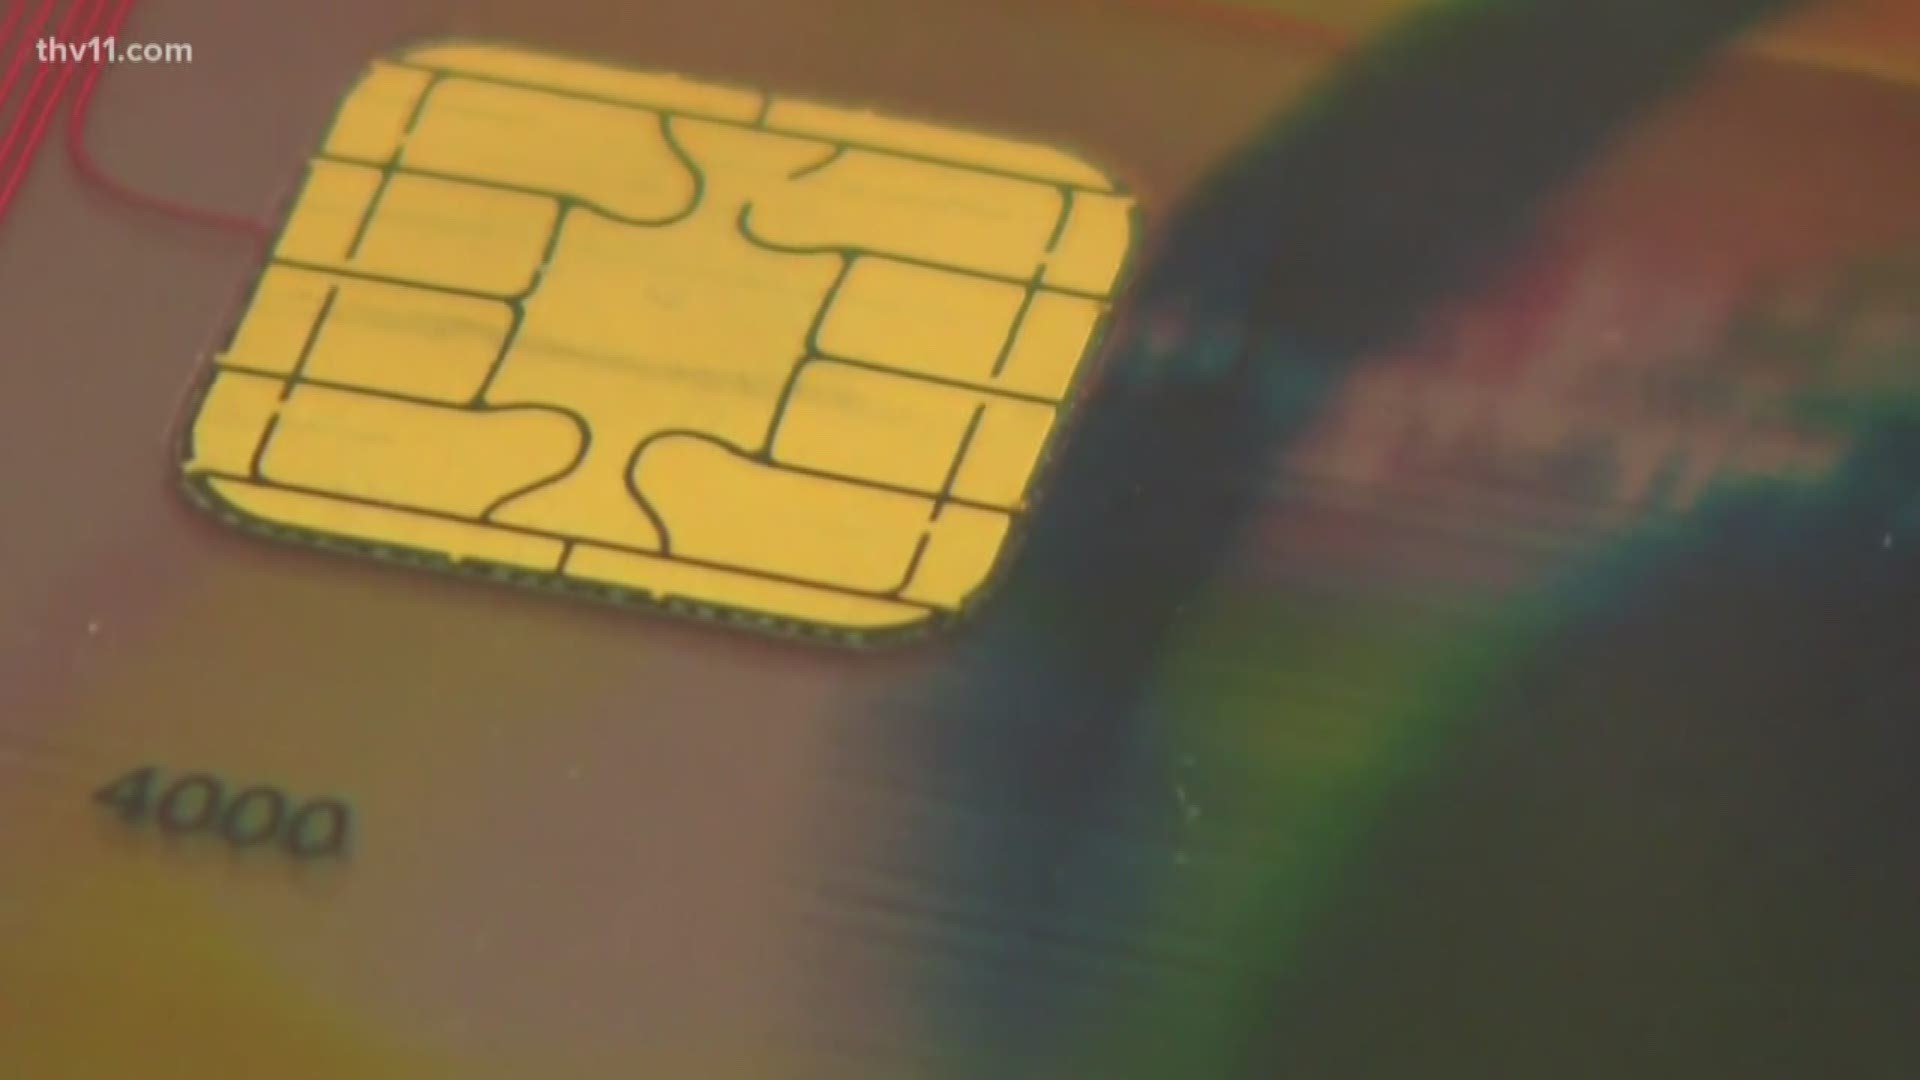 Sherwood Police Report Drive Thru And Restaurant Credit Card Fraud On The Rise Thv11 Com